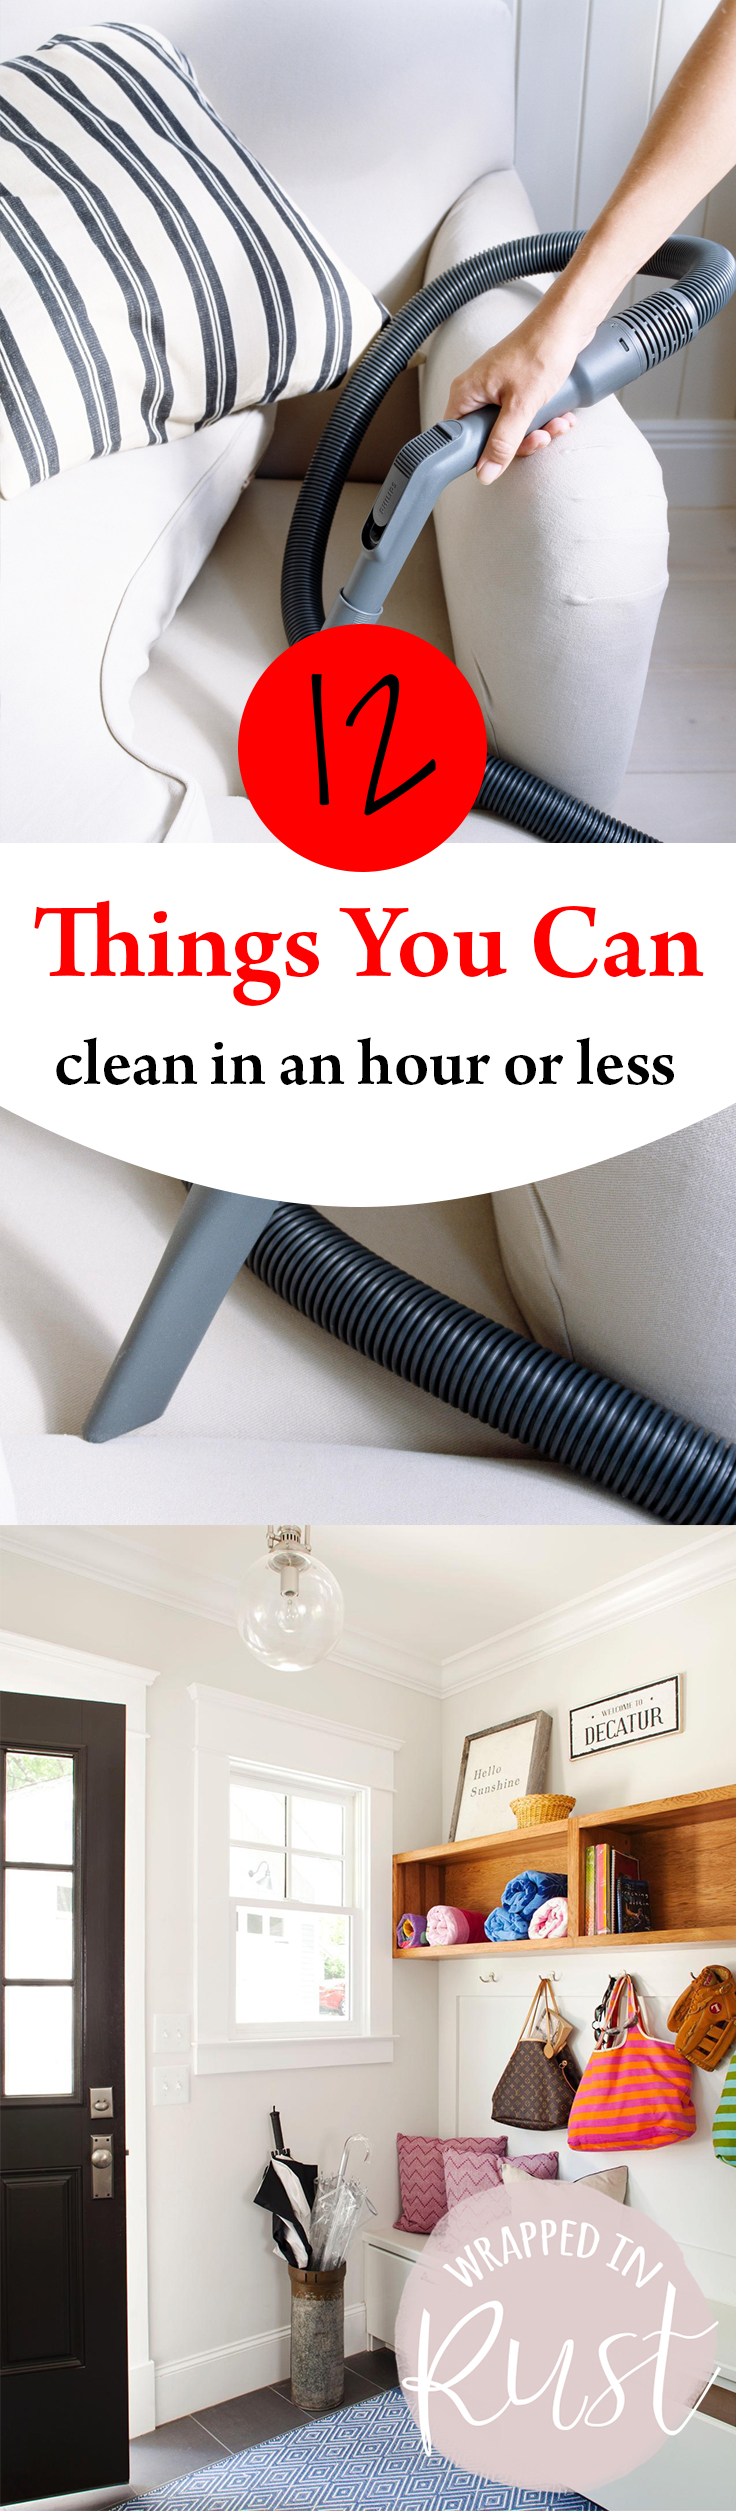 12 Things You Can Clean in an Hour or Less